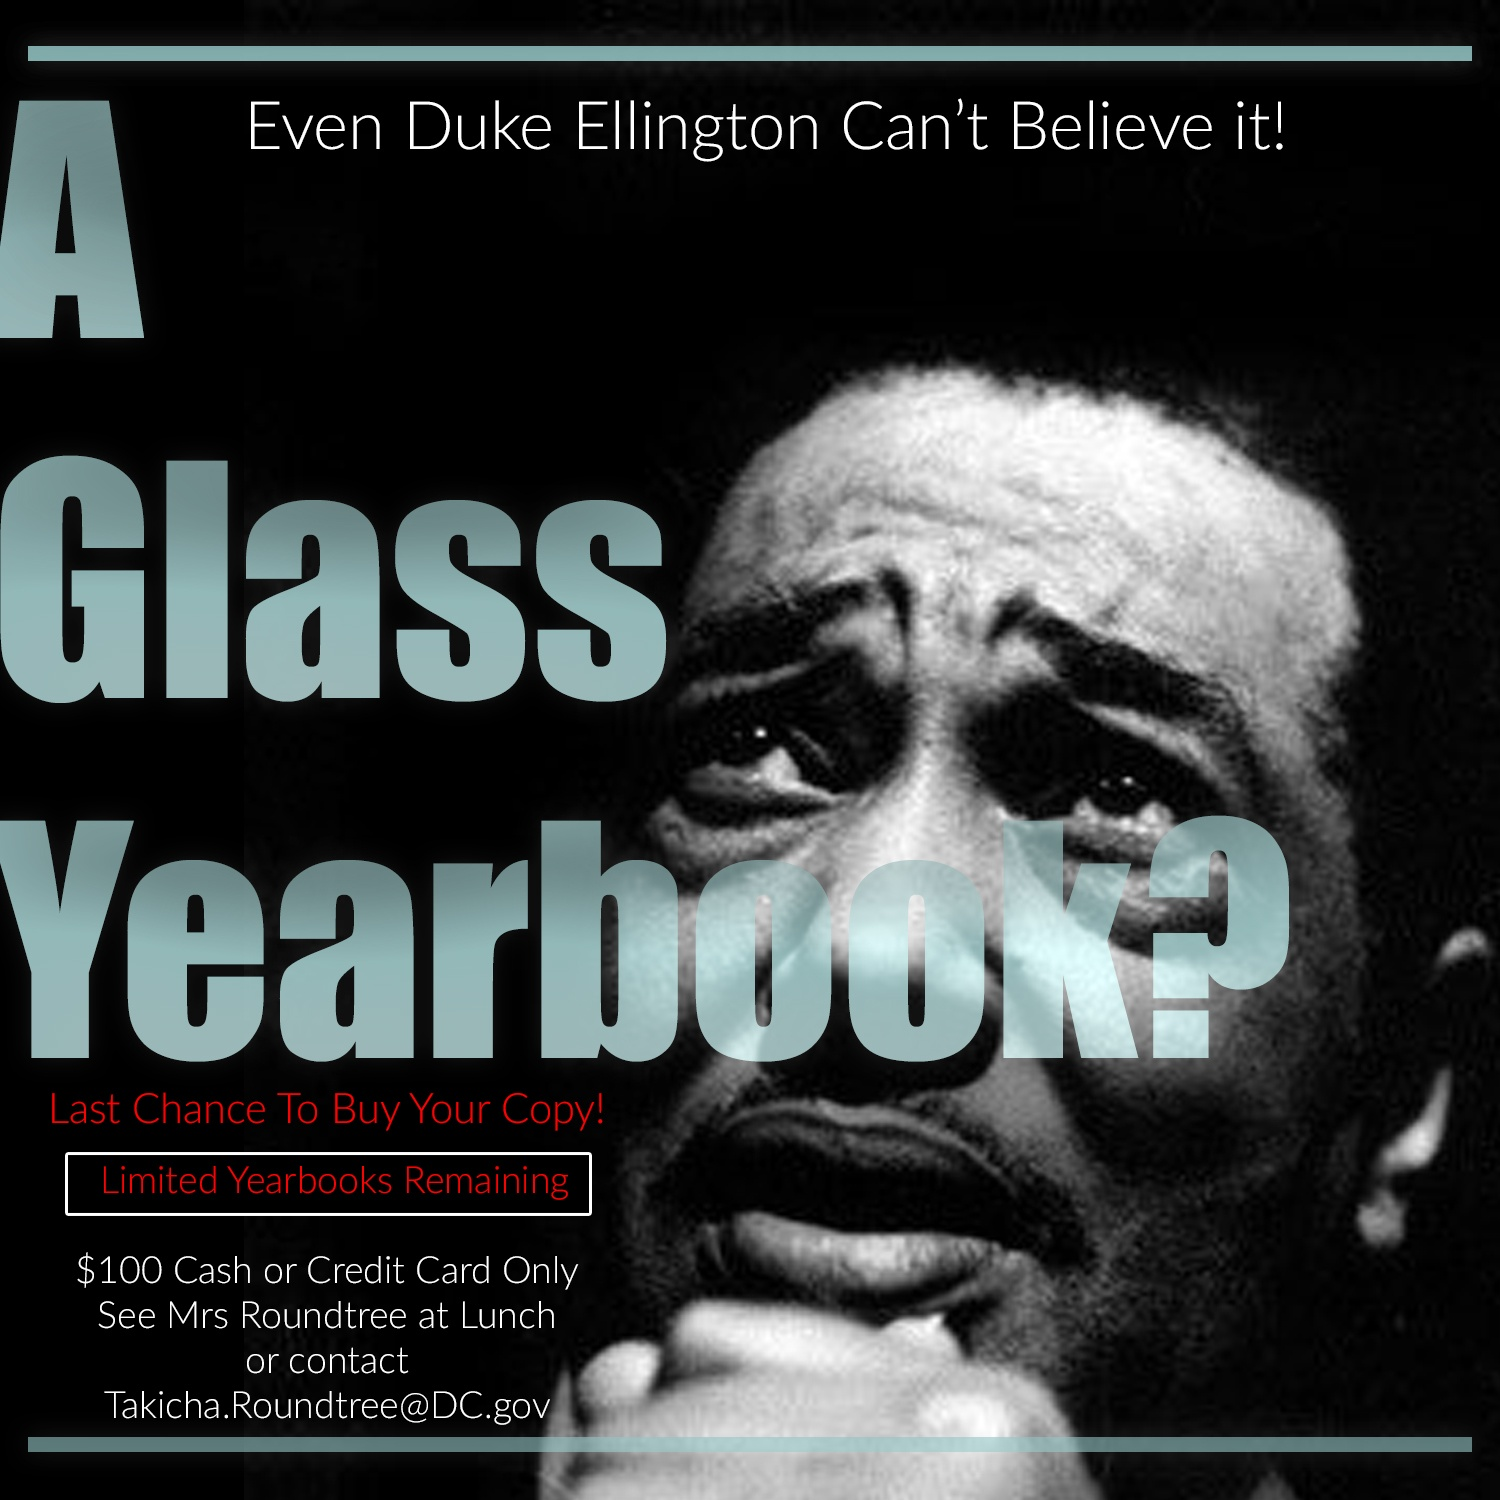 Last Chance to get Yearbooks